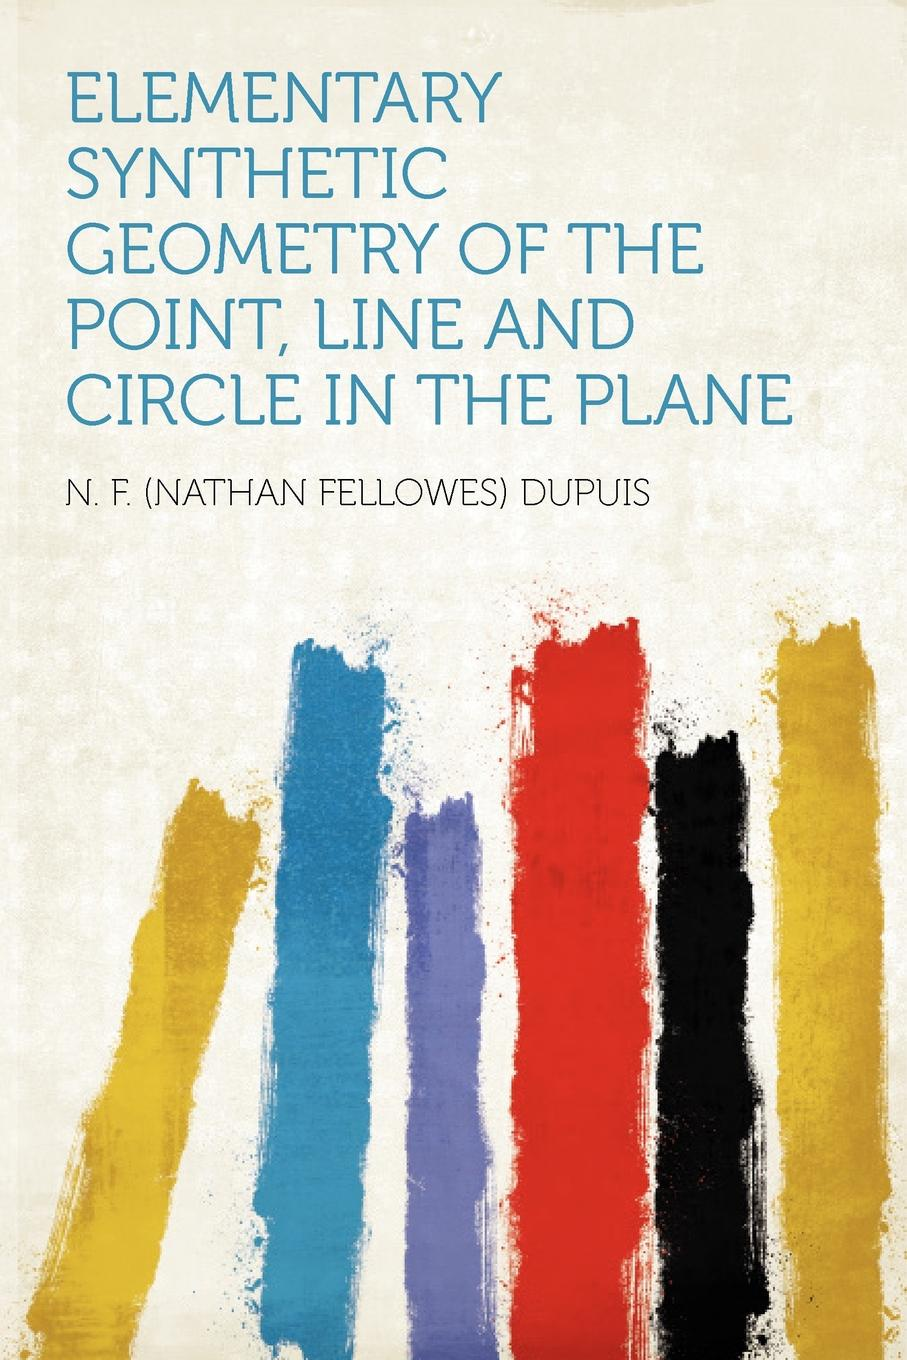 Elementary Synthetic Geometry of the Point, Line and Circle in the Plane.